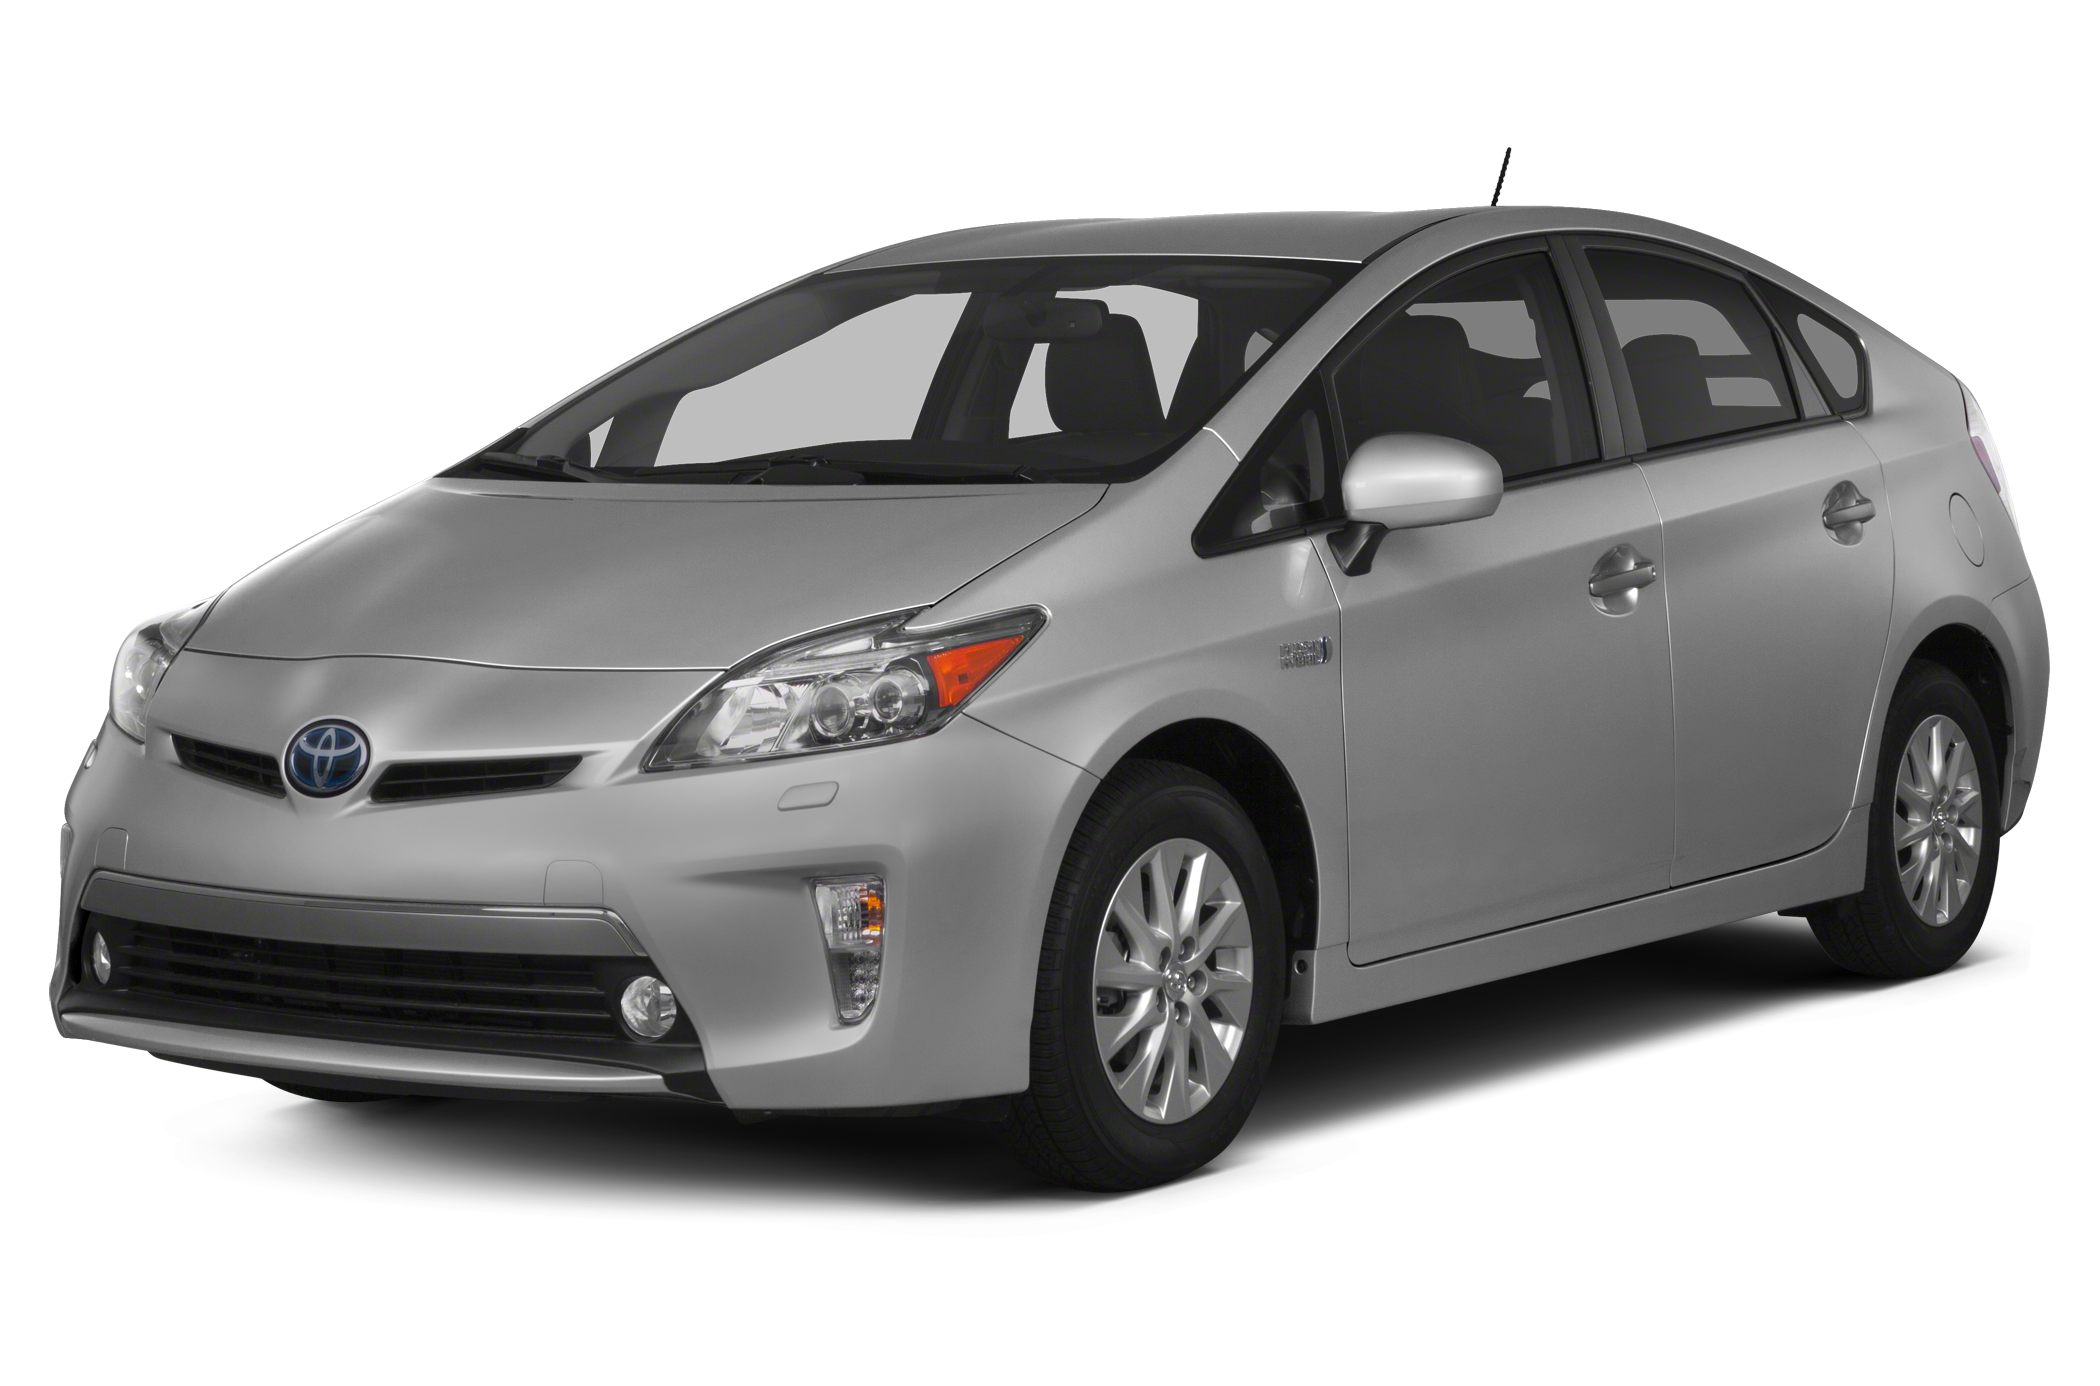 2015ToyotaPrius Plug-in